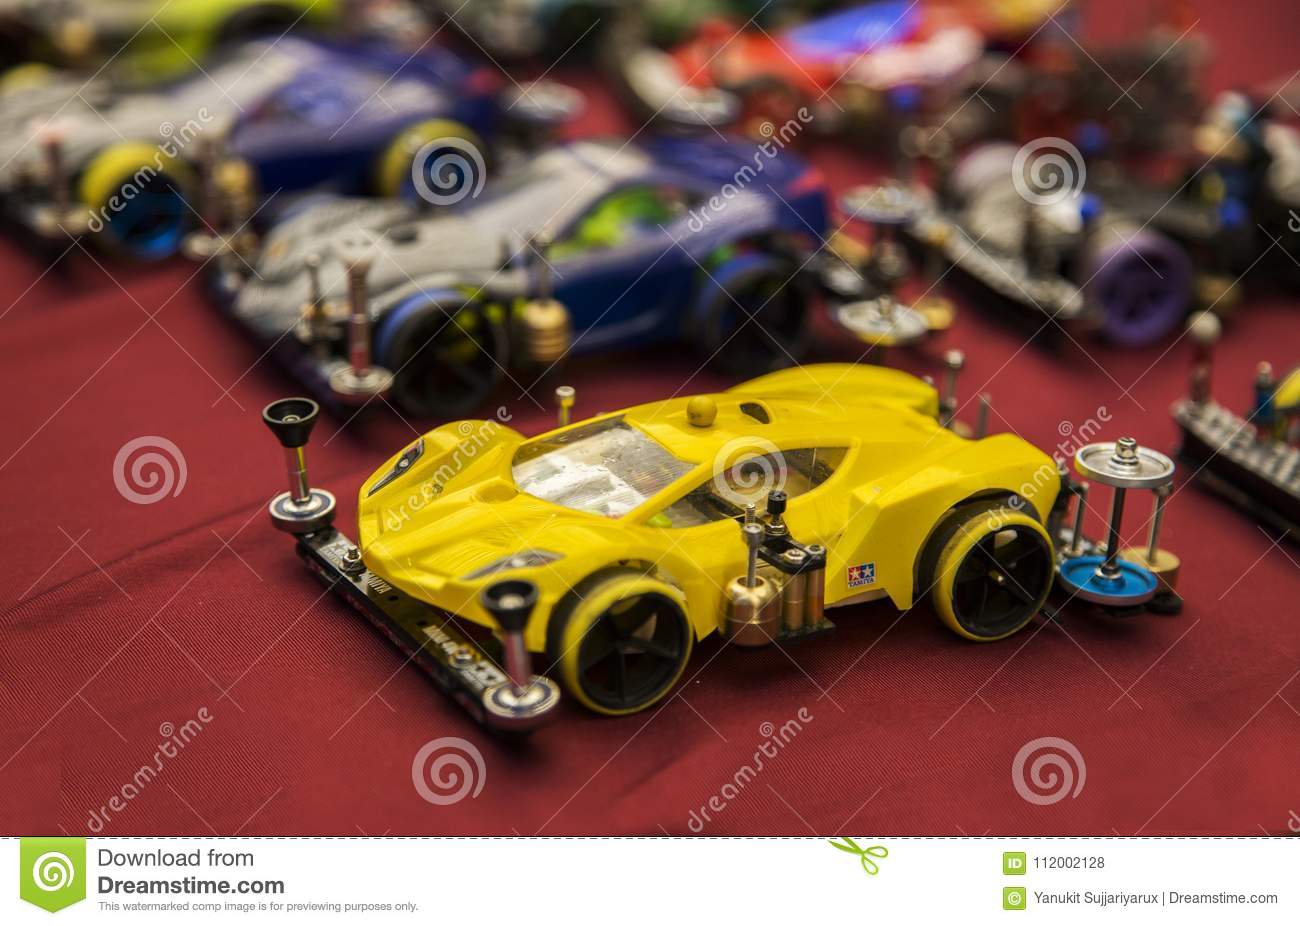 Mini Car Model Racing Game Call Tamiya Type Boy Toy Speed